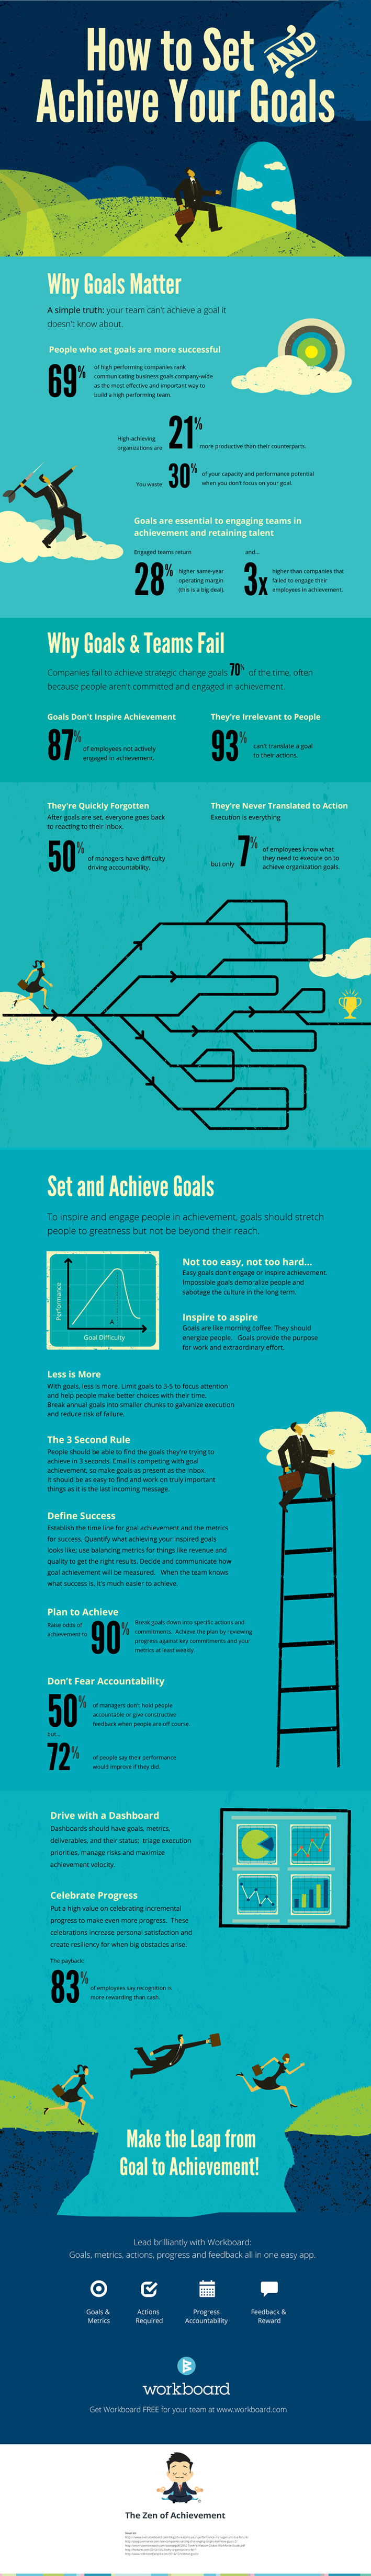 How To Set and Achieve Goals #Infographic